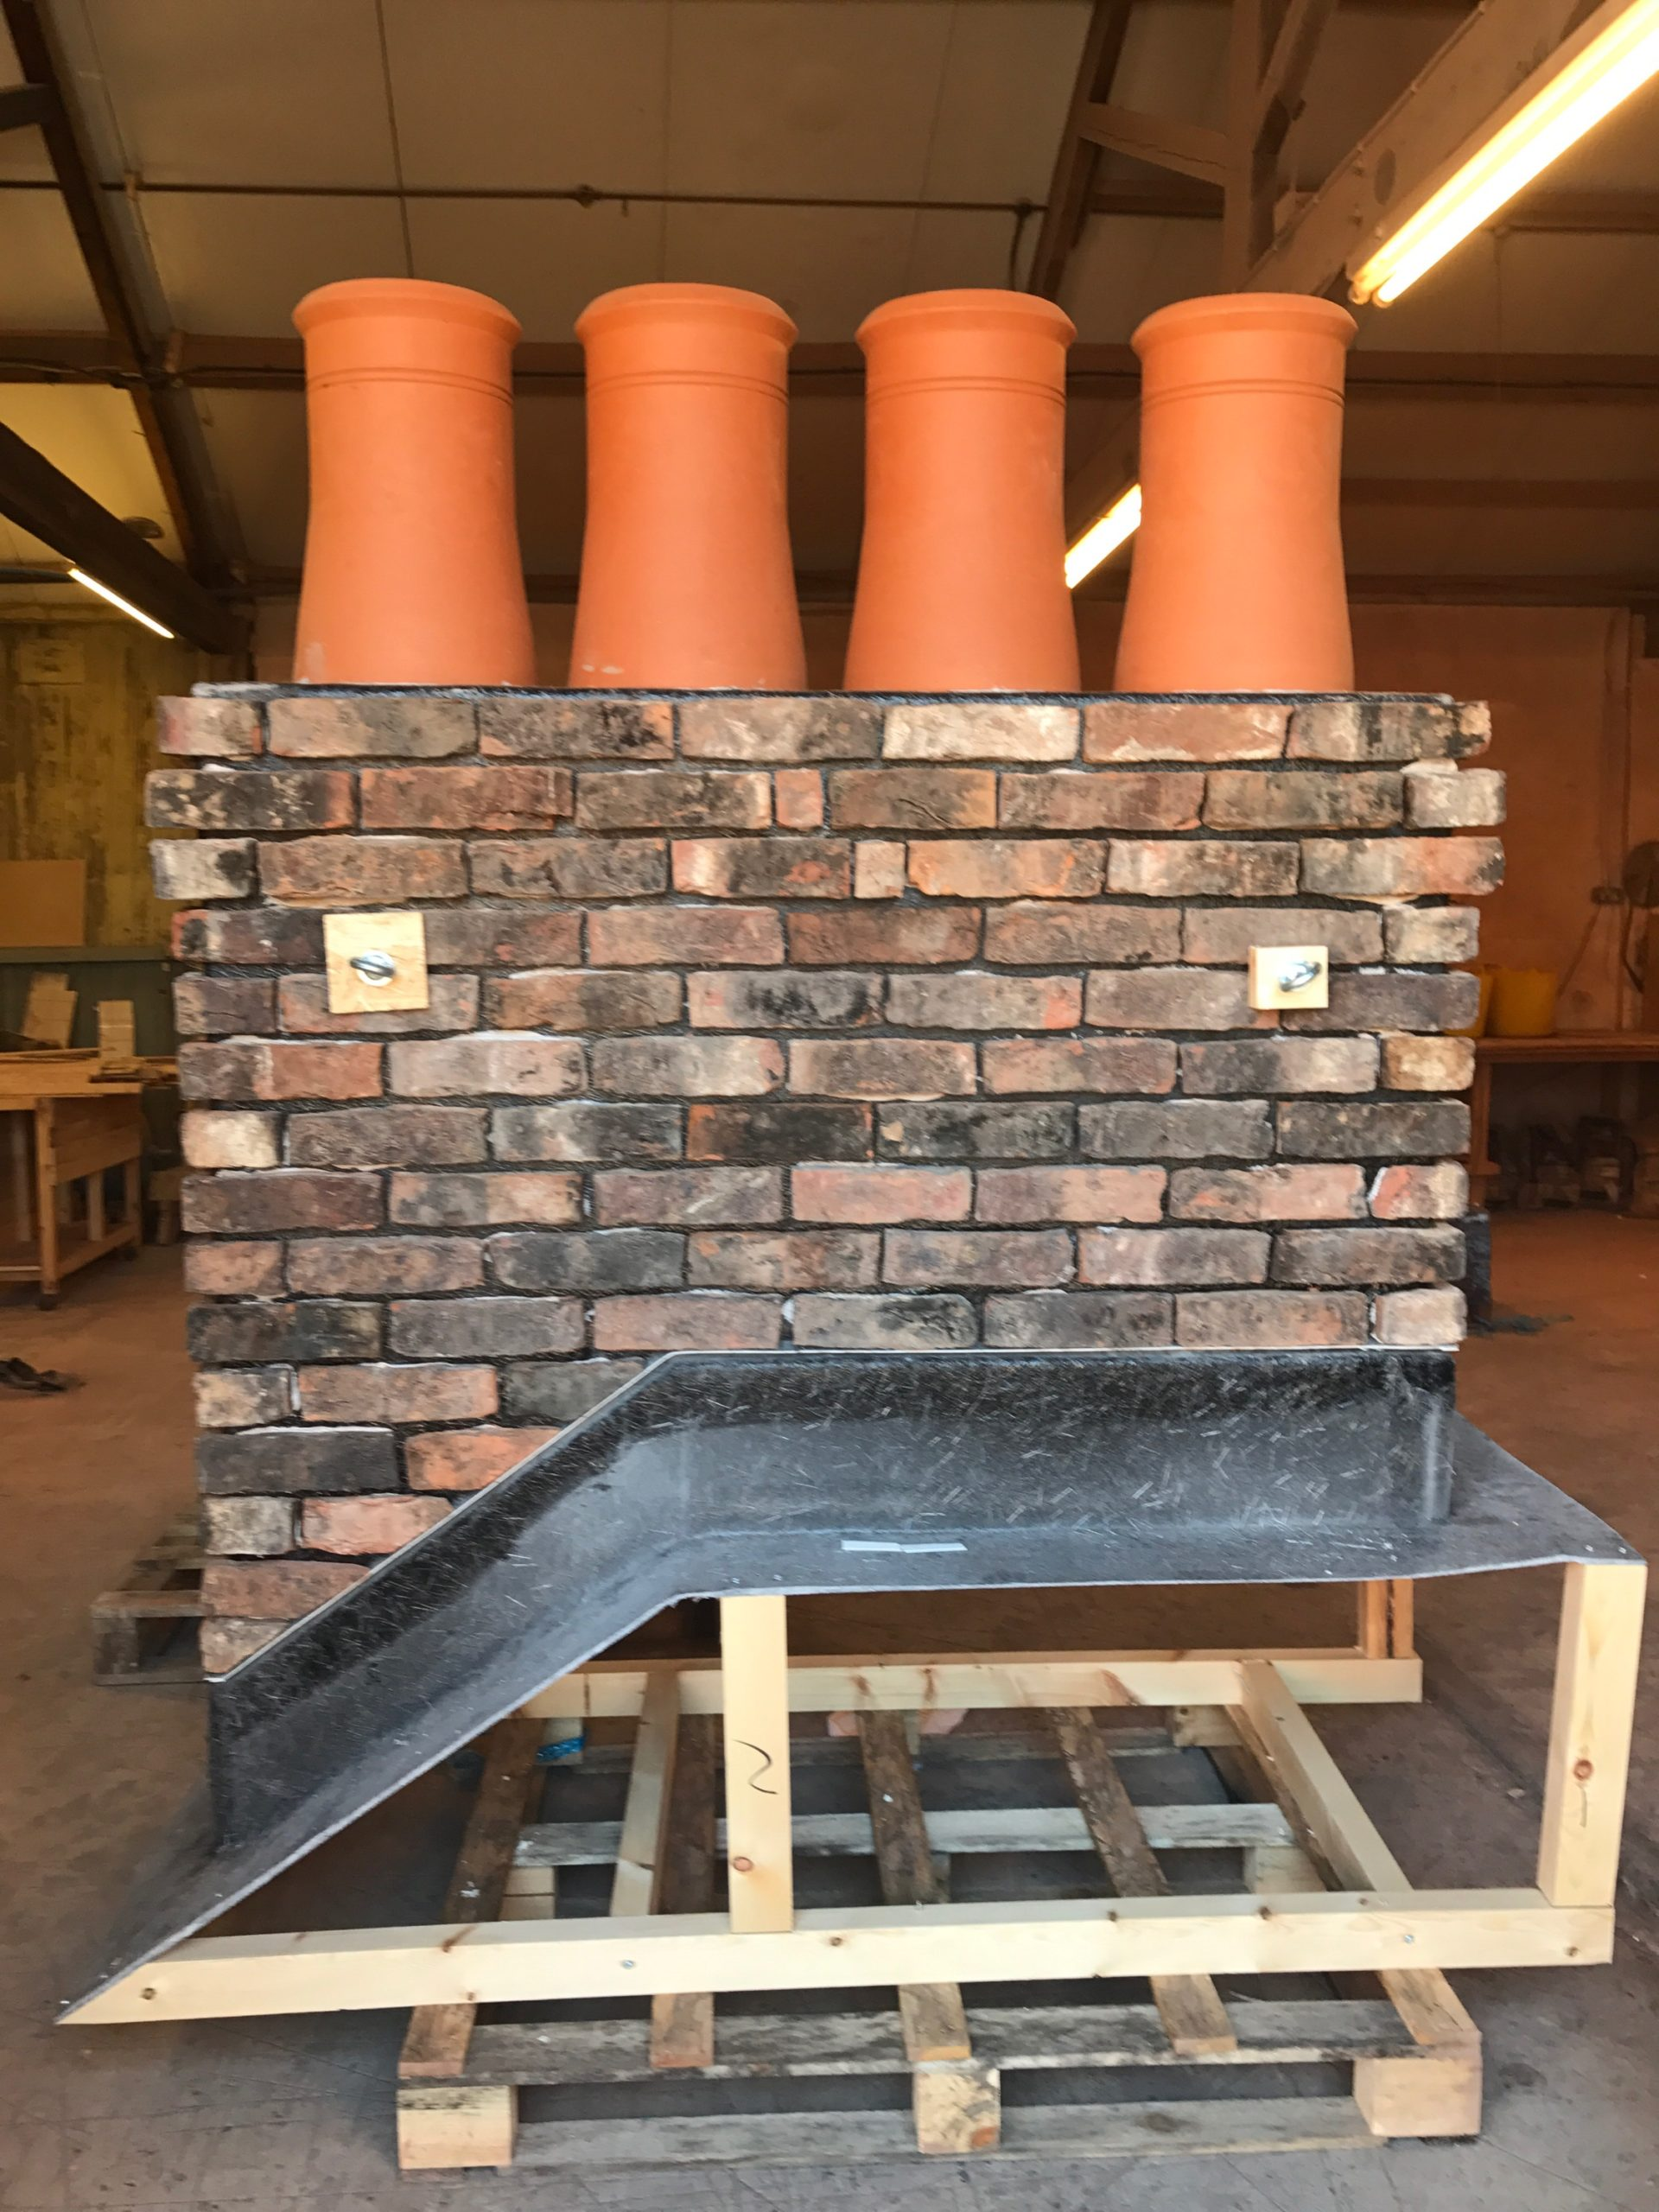 Prefabricated chimneys in production